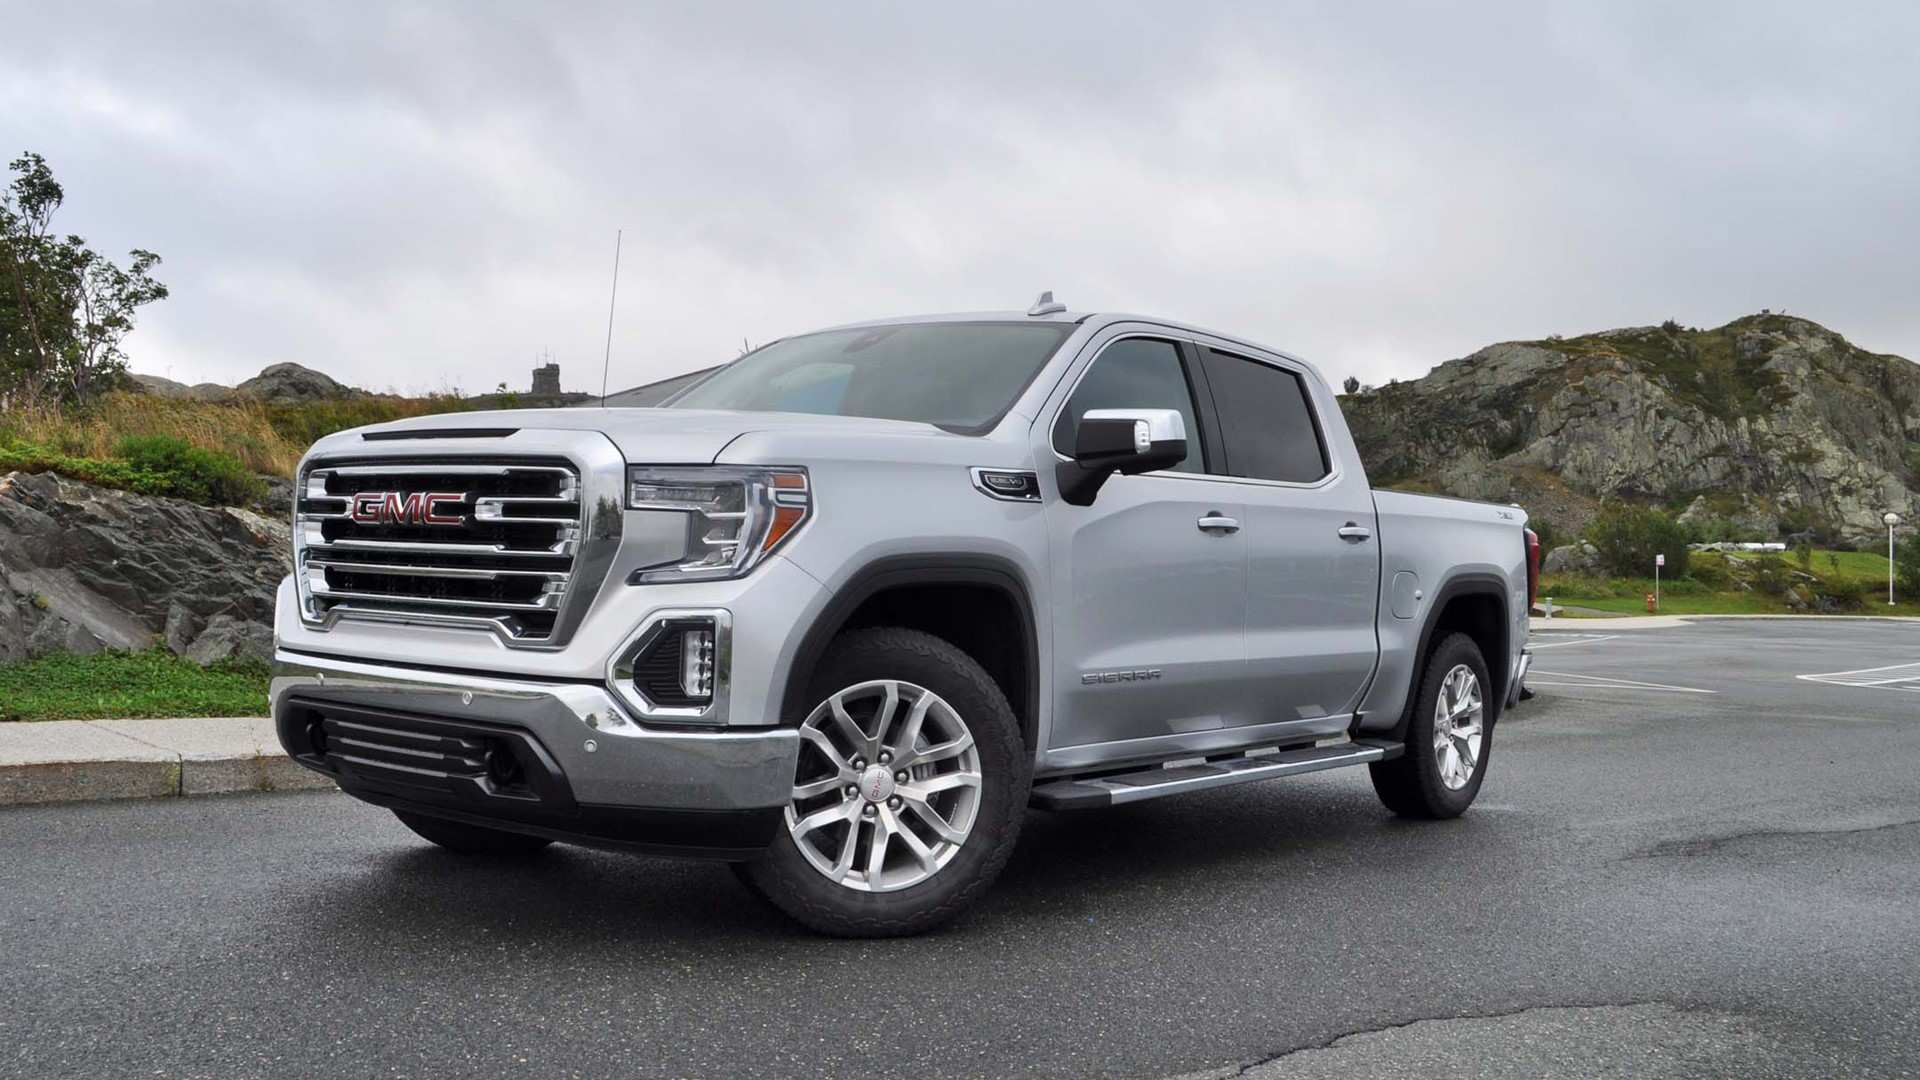 40 New Best 2019 Gmc Denali Pickup Exterior And Interior Review Review by Best 2019 Gmc Denali Pickup Exterior And Interior Review